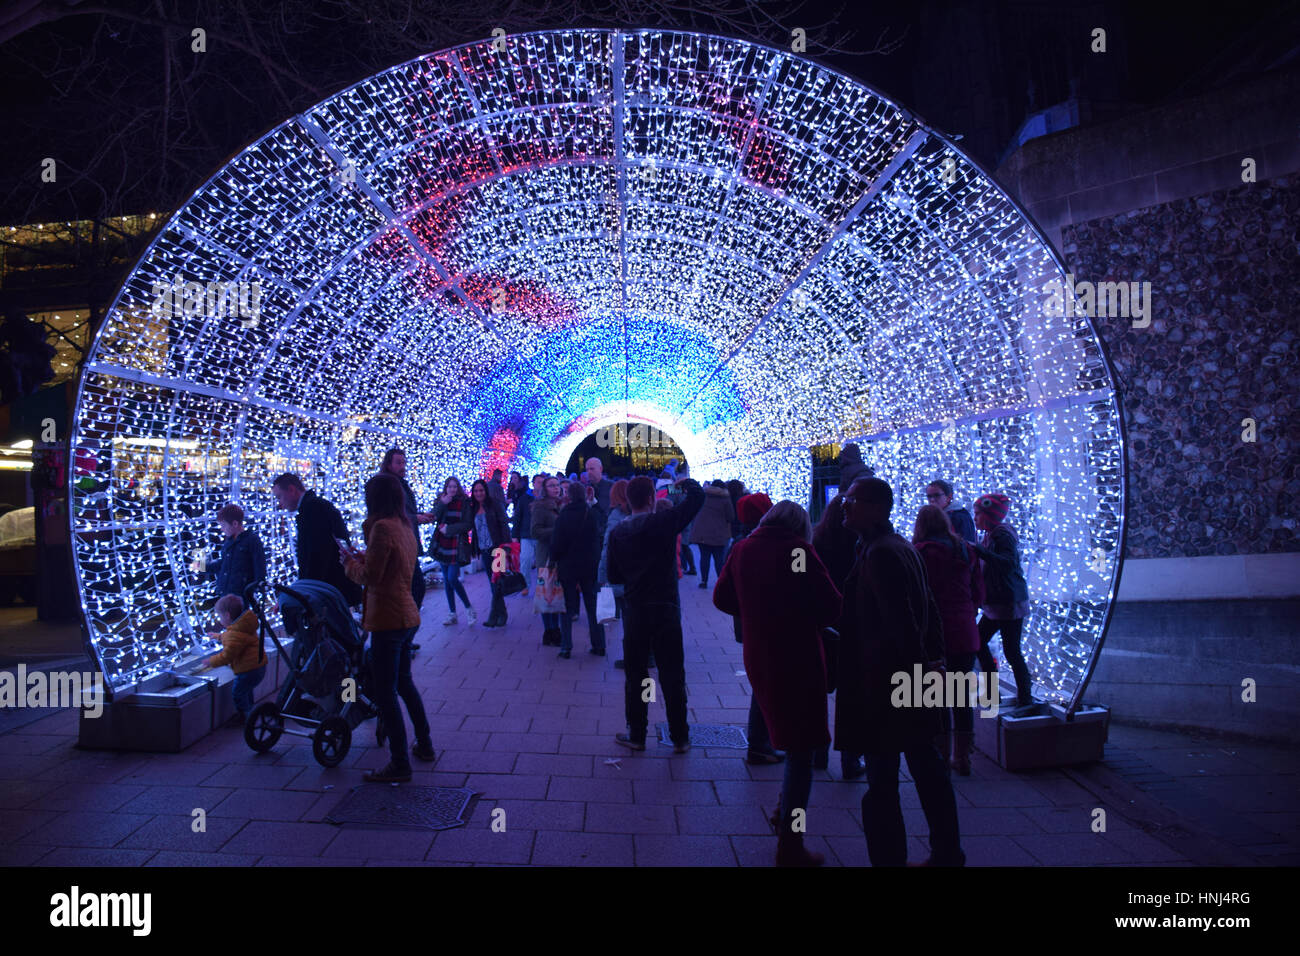 Tunnel of light, Christmas decorations Norwich December 2016 UK - Stock Image